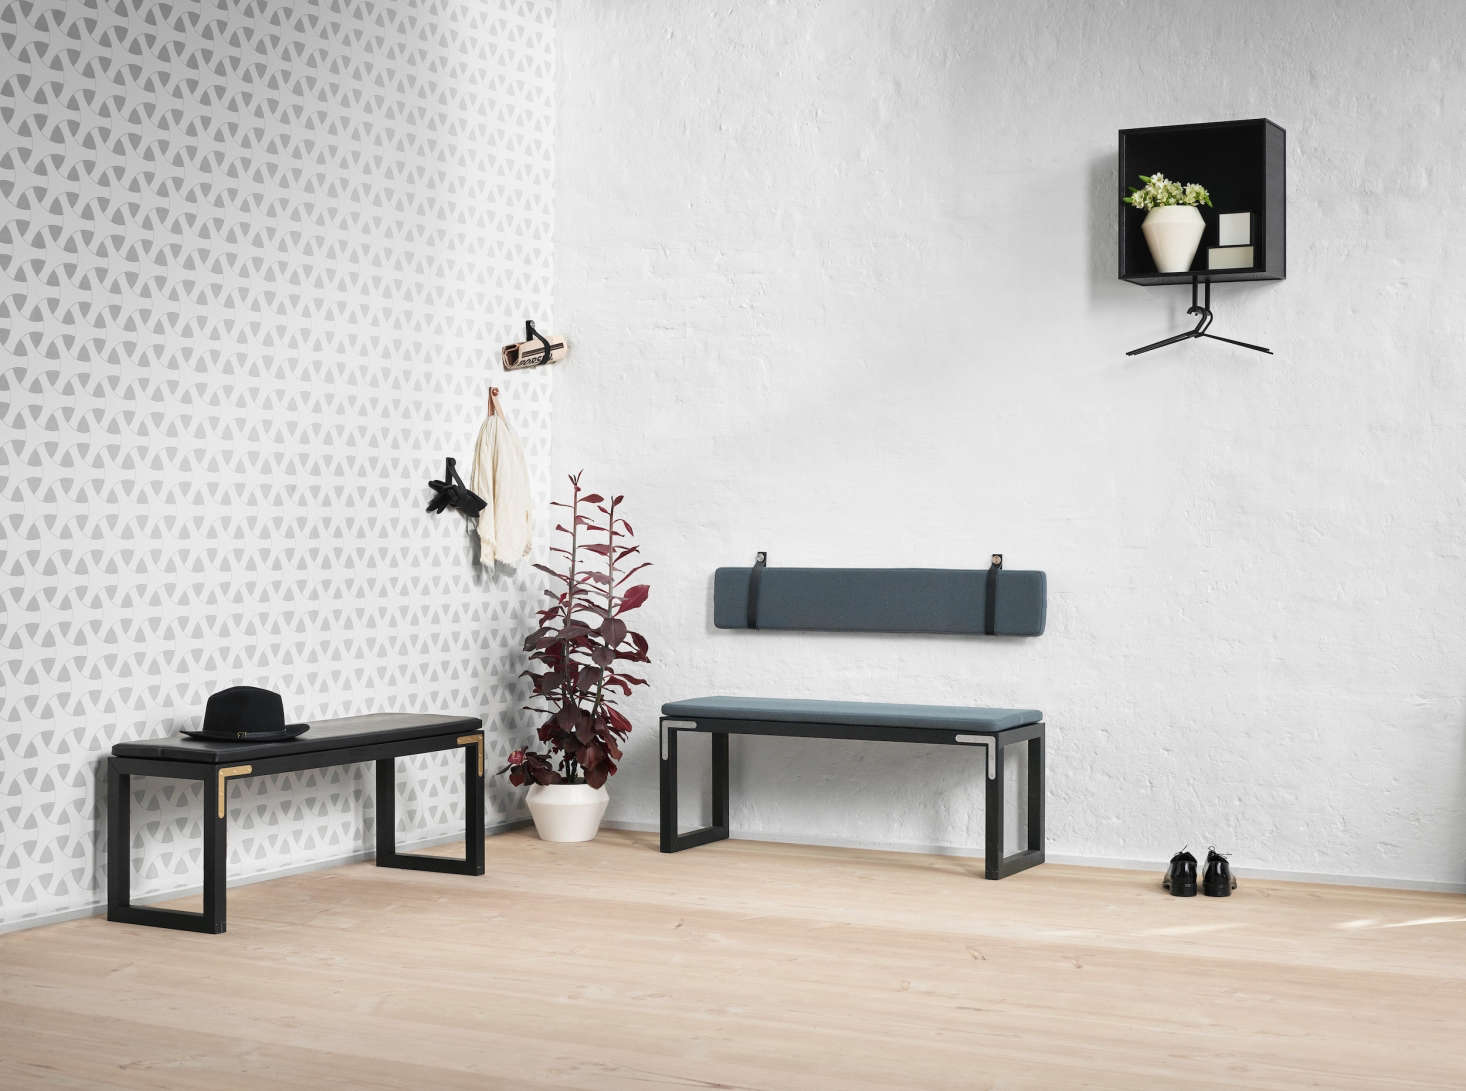 The collection is endlessly customizable. Here, two Conekt benches and a scattering of Stropp leather loops form an artful sitting area.